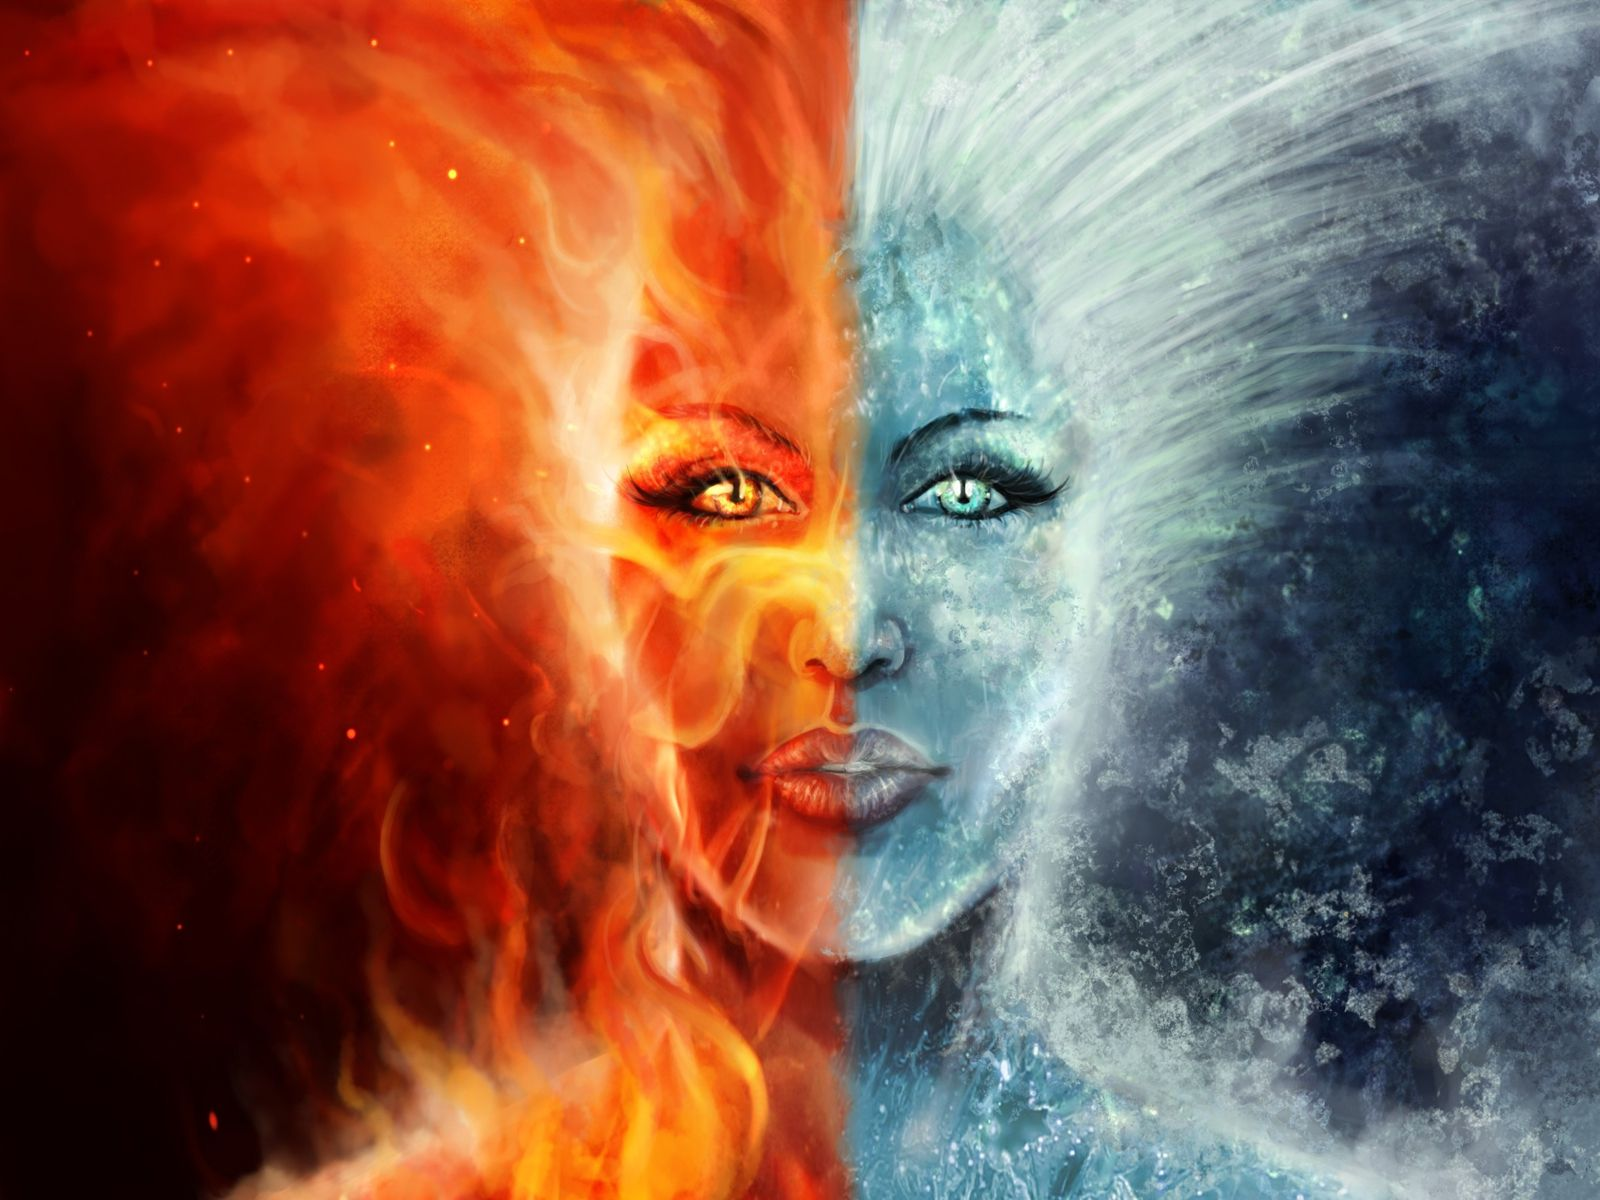 Crps Fire And Ice Fire And Ice Wallpaper Fire And Ice Weather Art